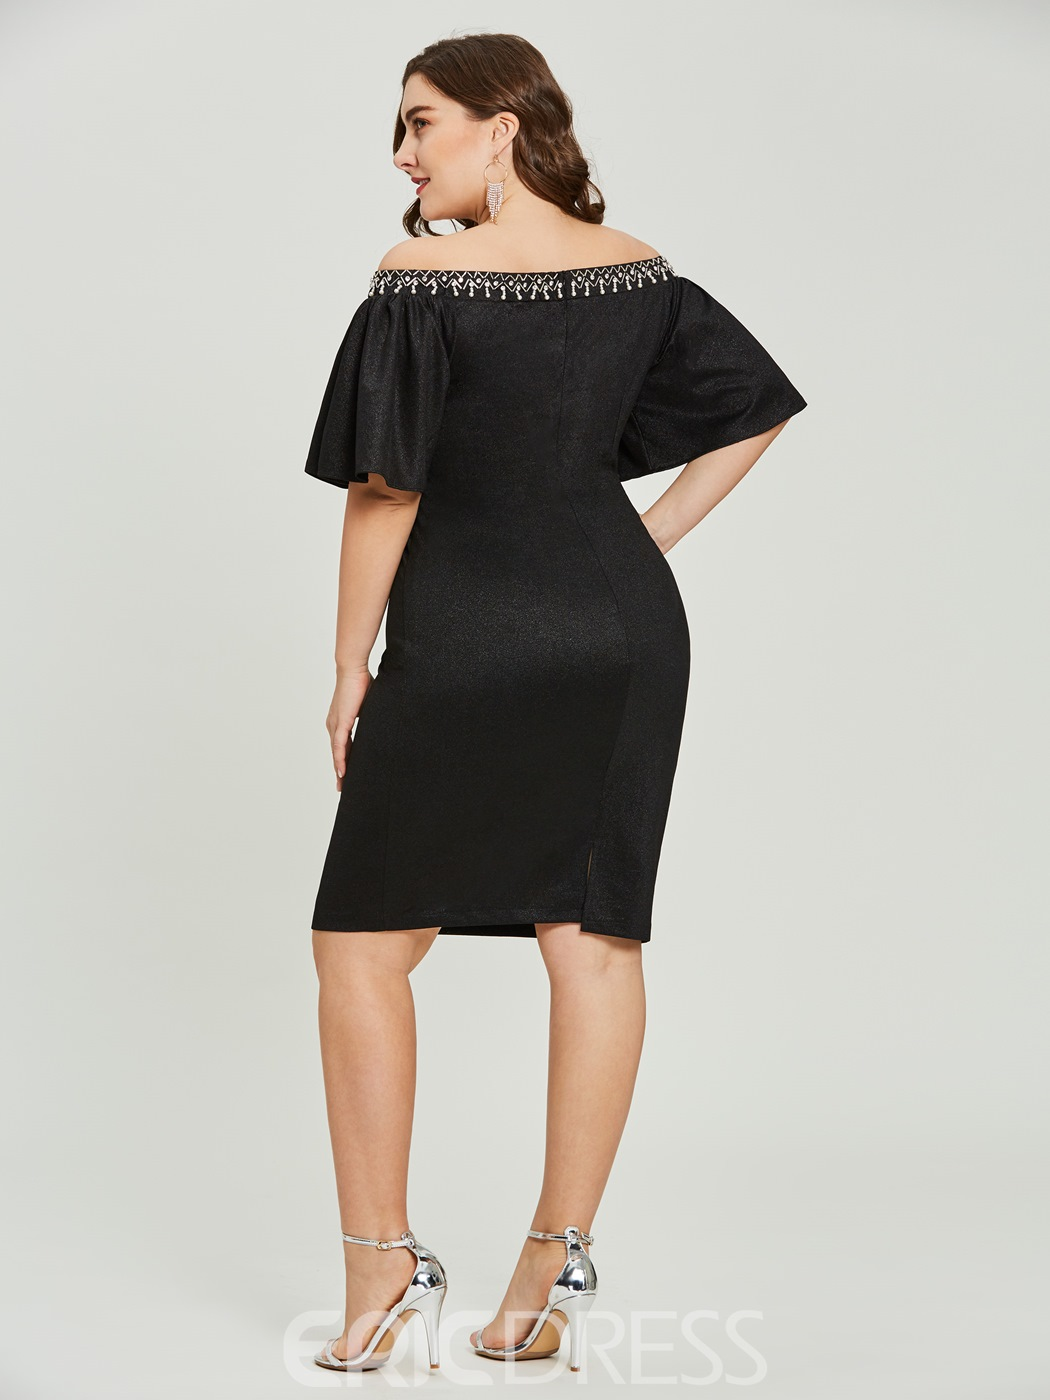 Ericdress Sheath Off-the-Shoulder Beaded Short Cocktail Dress